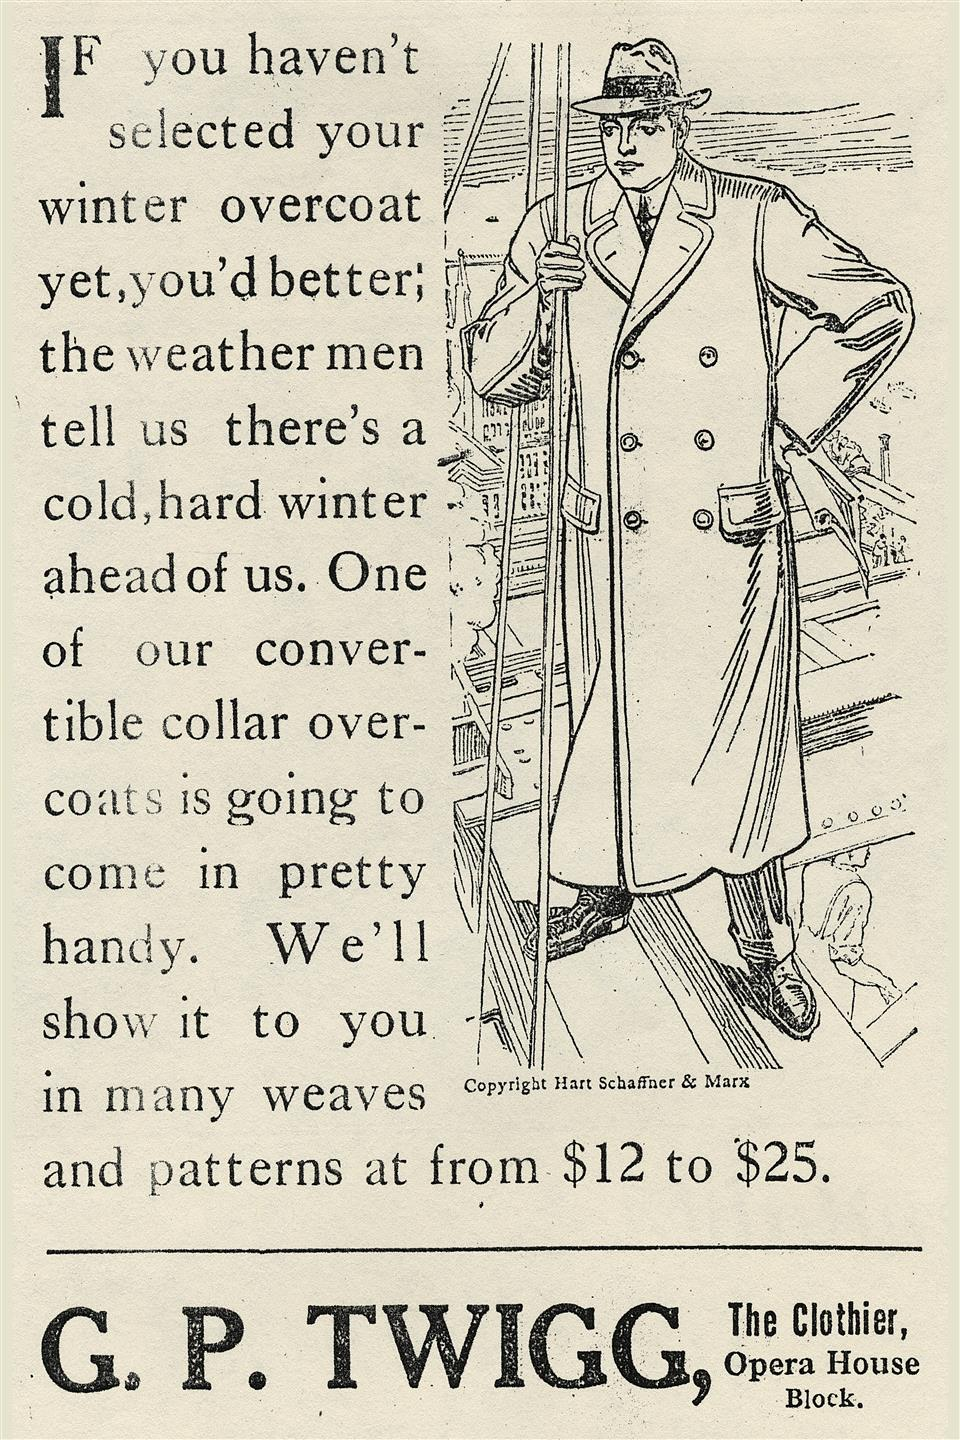 an old newspaper advertisement for twiggs coats